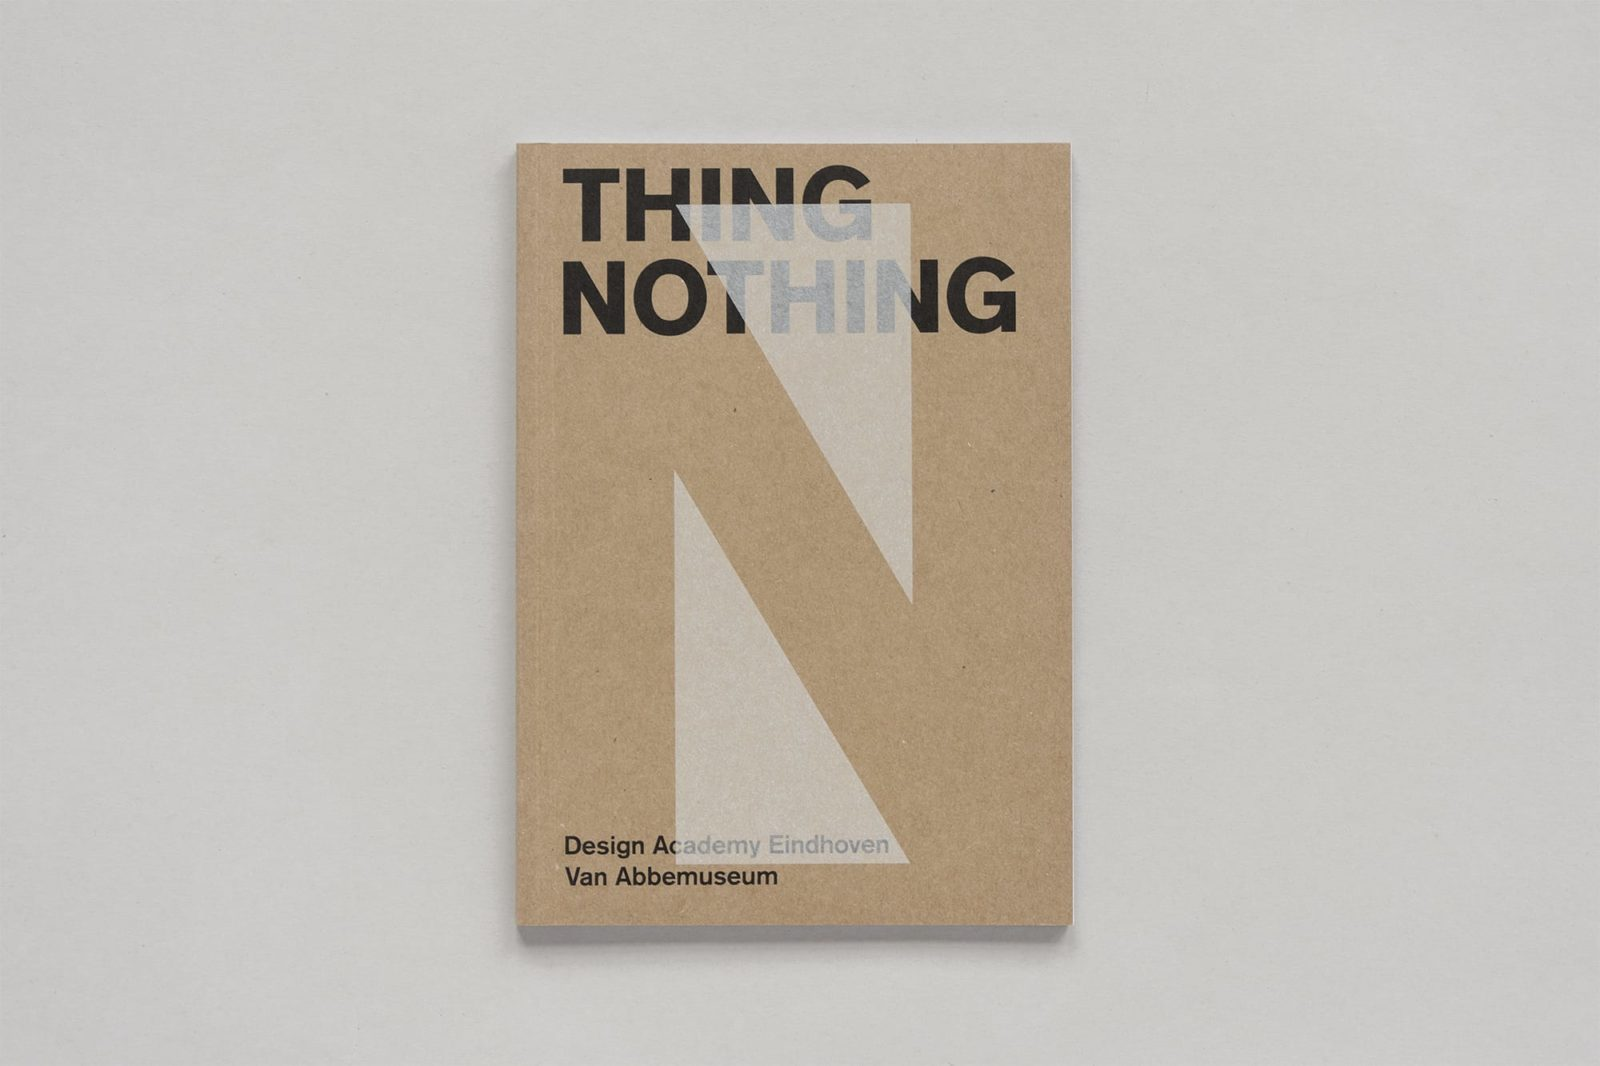 Haller Brun Design Academy Eindhoven Thing Nothing 2015 Van Abbemuseum exhibition catalogue